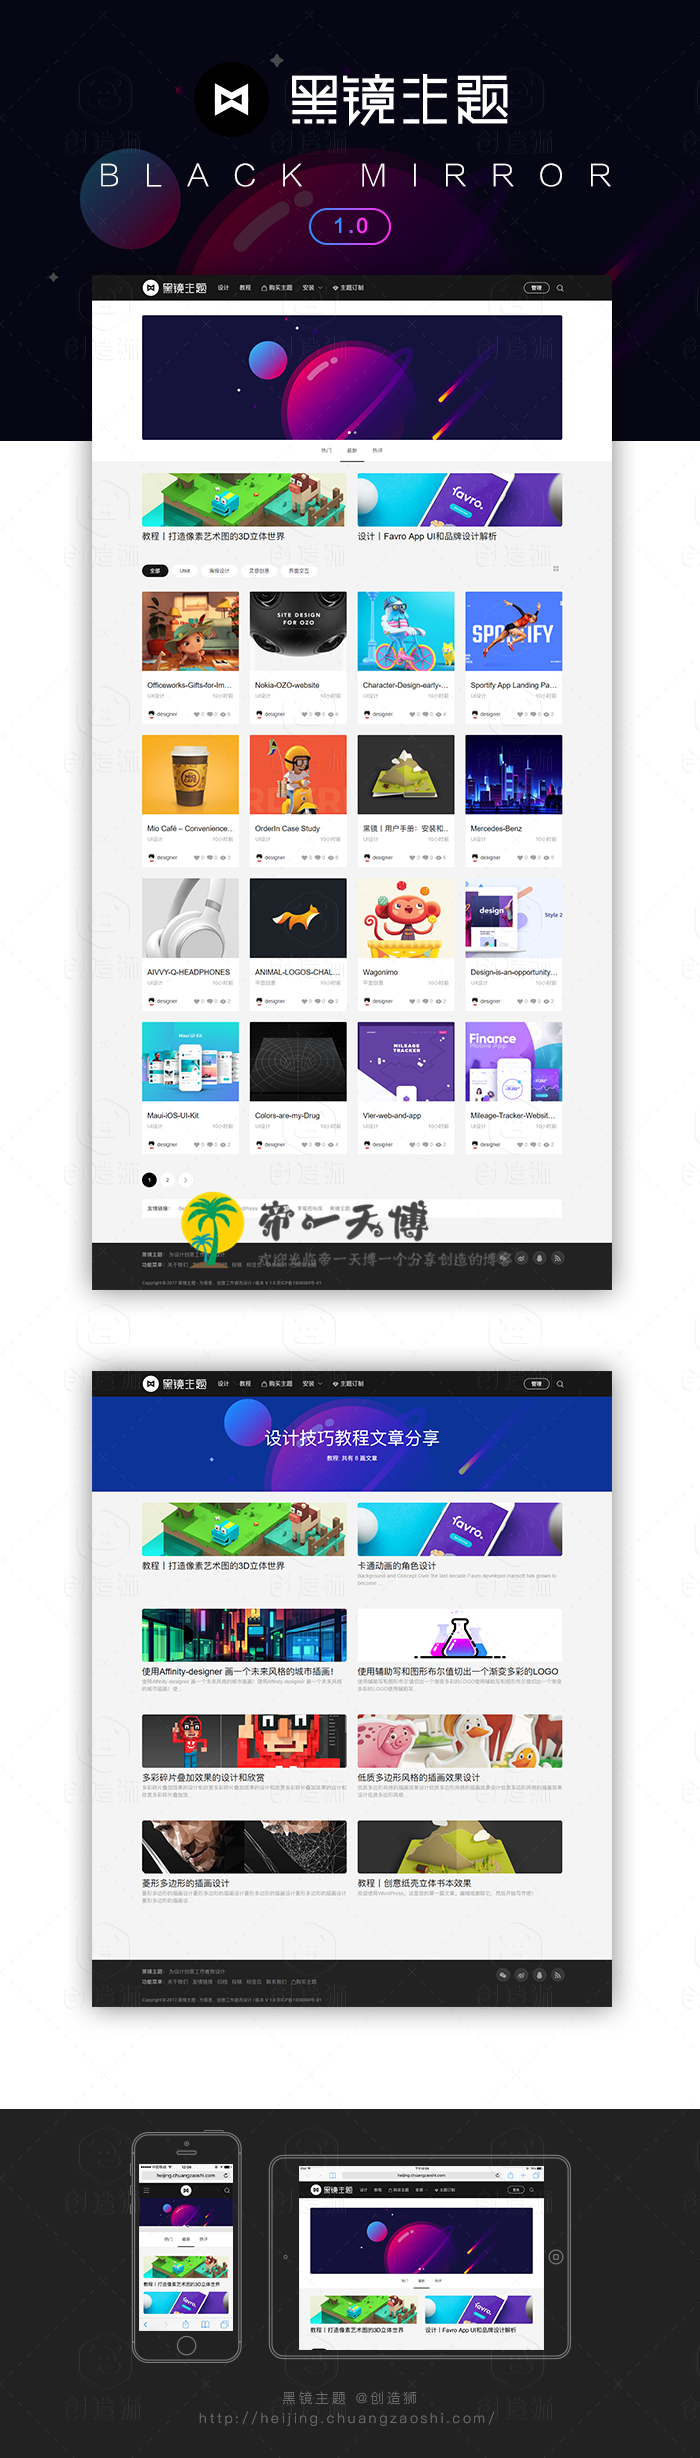 黑镜主题2.0(BlackMirror)WordPress